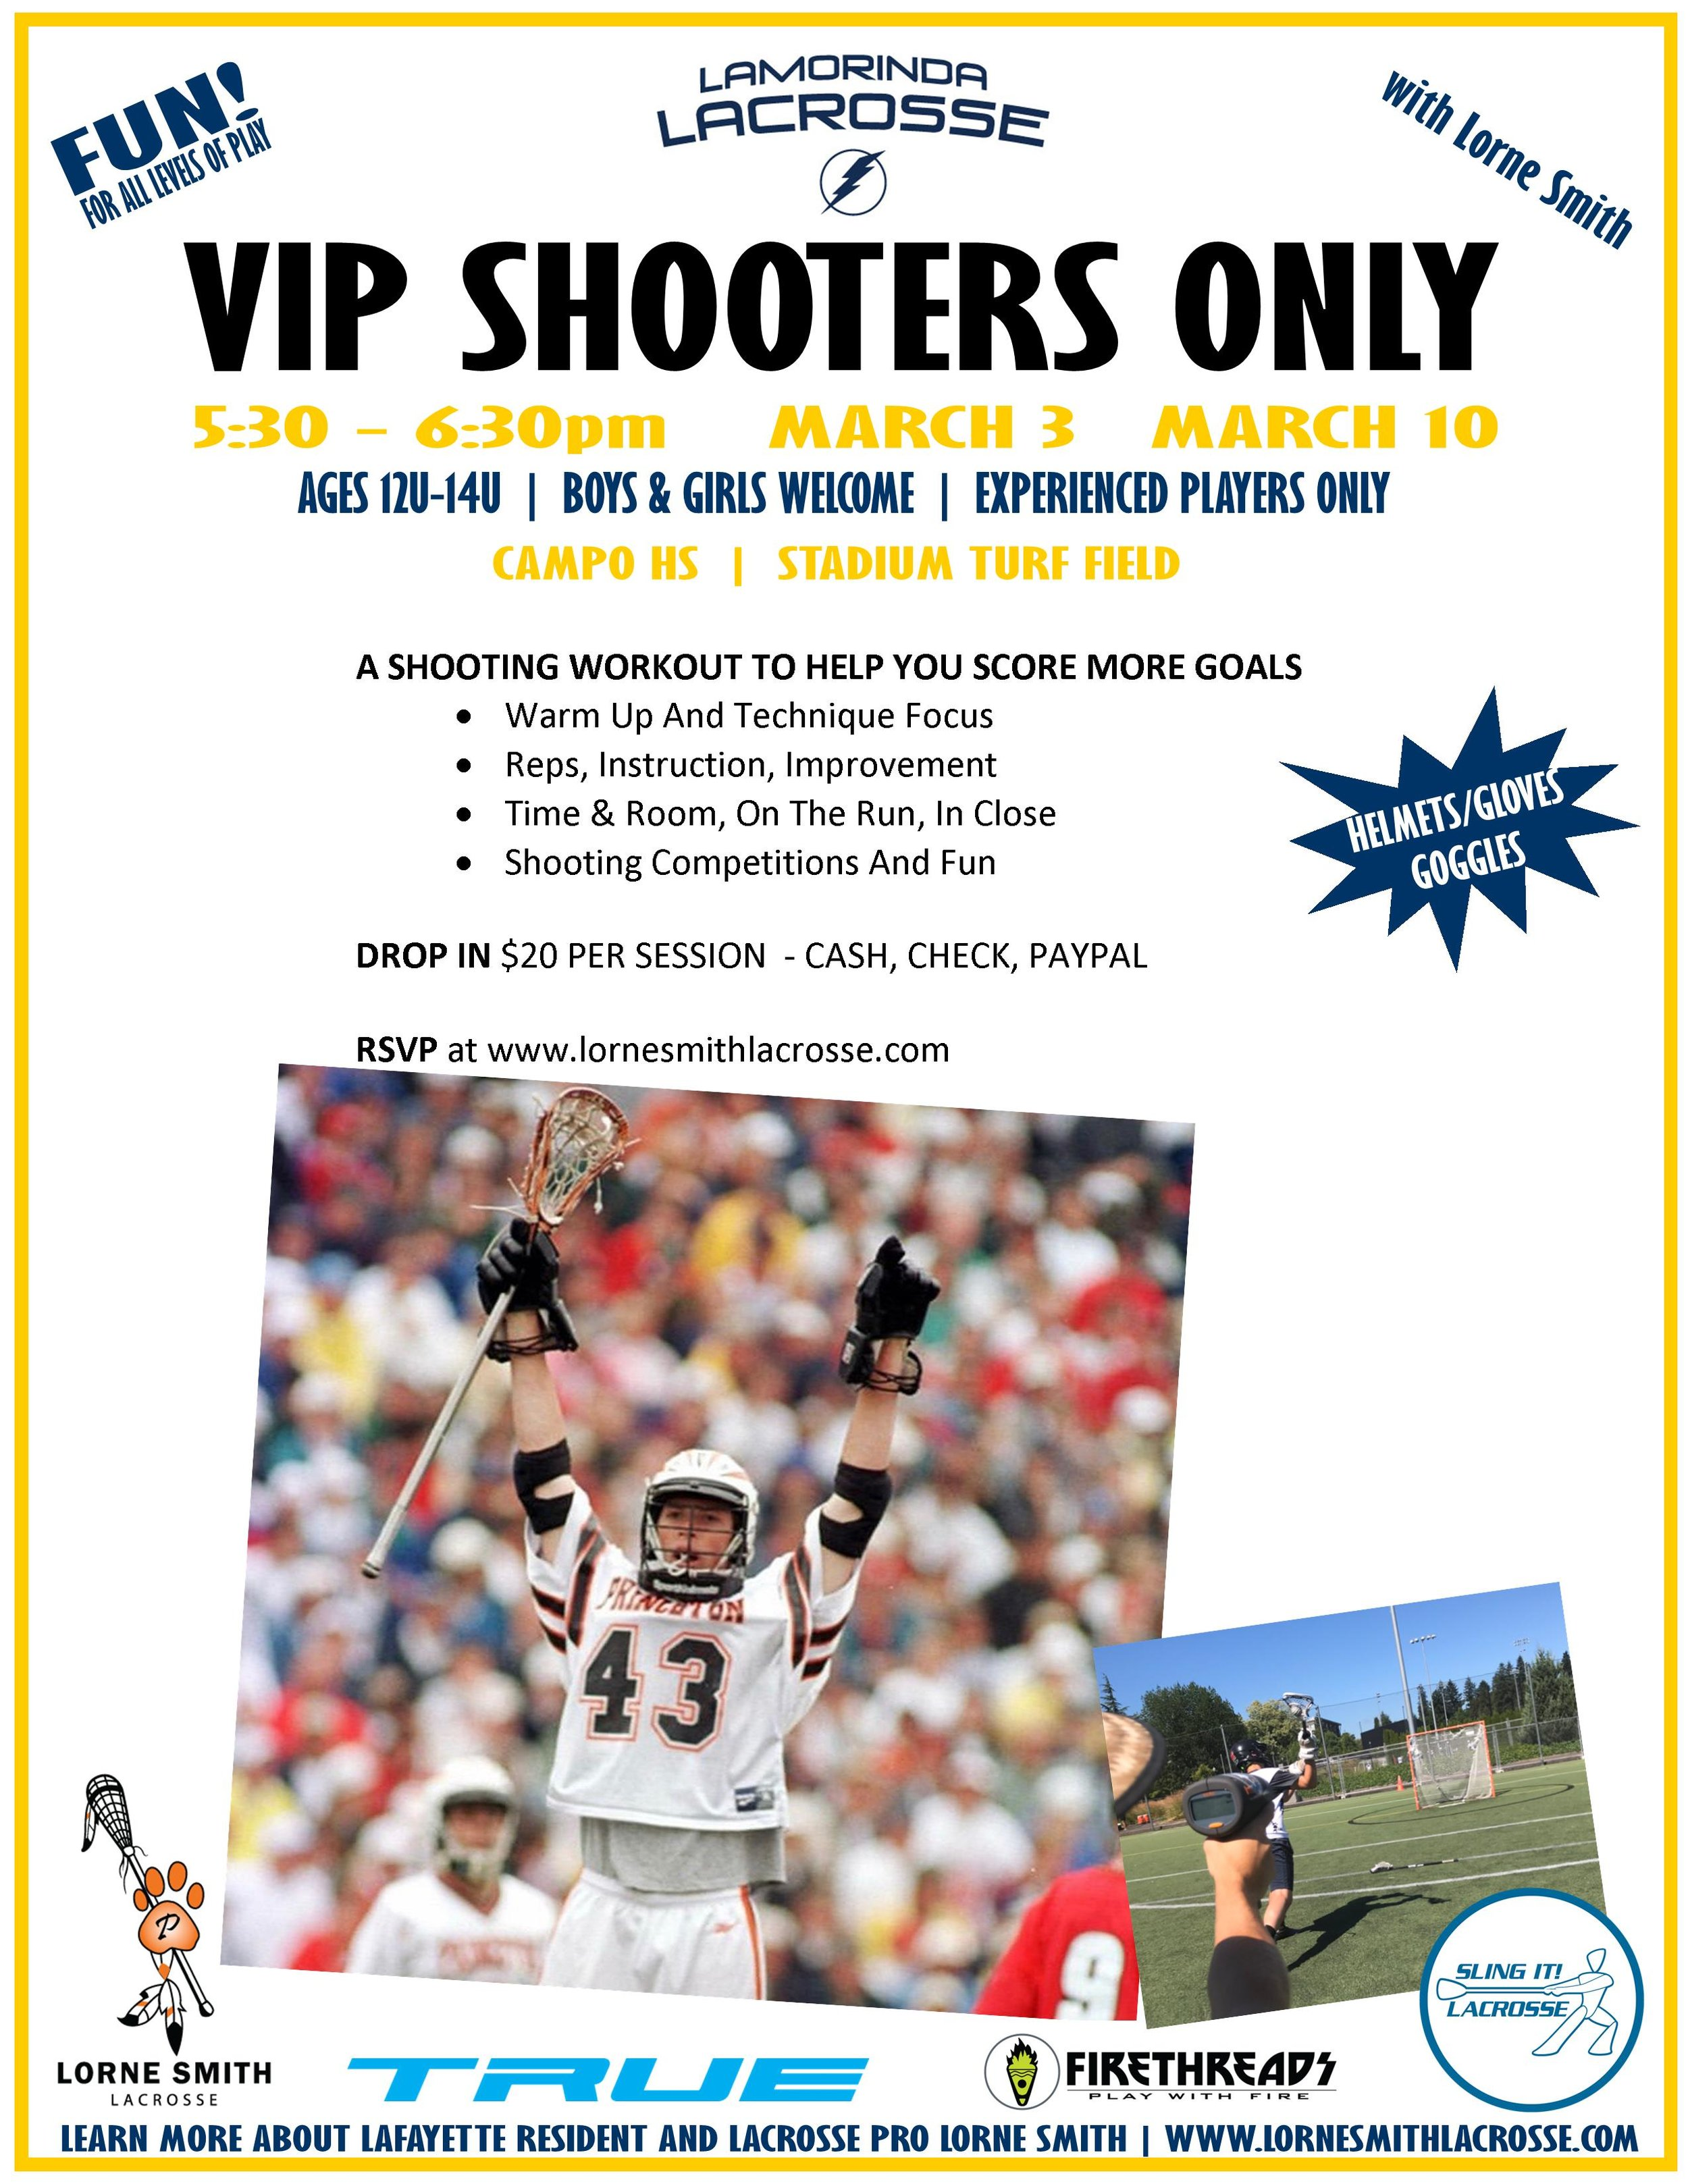 VIP Shooters Only - Spring 19.jpg